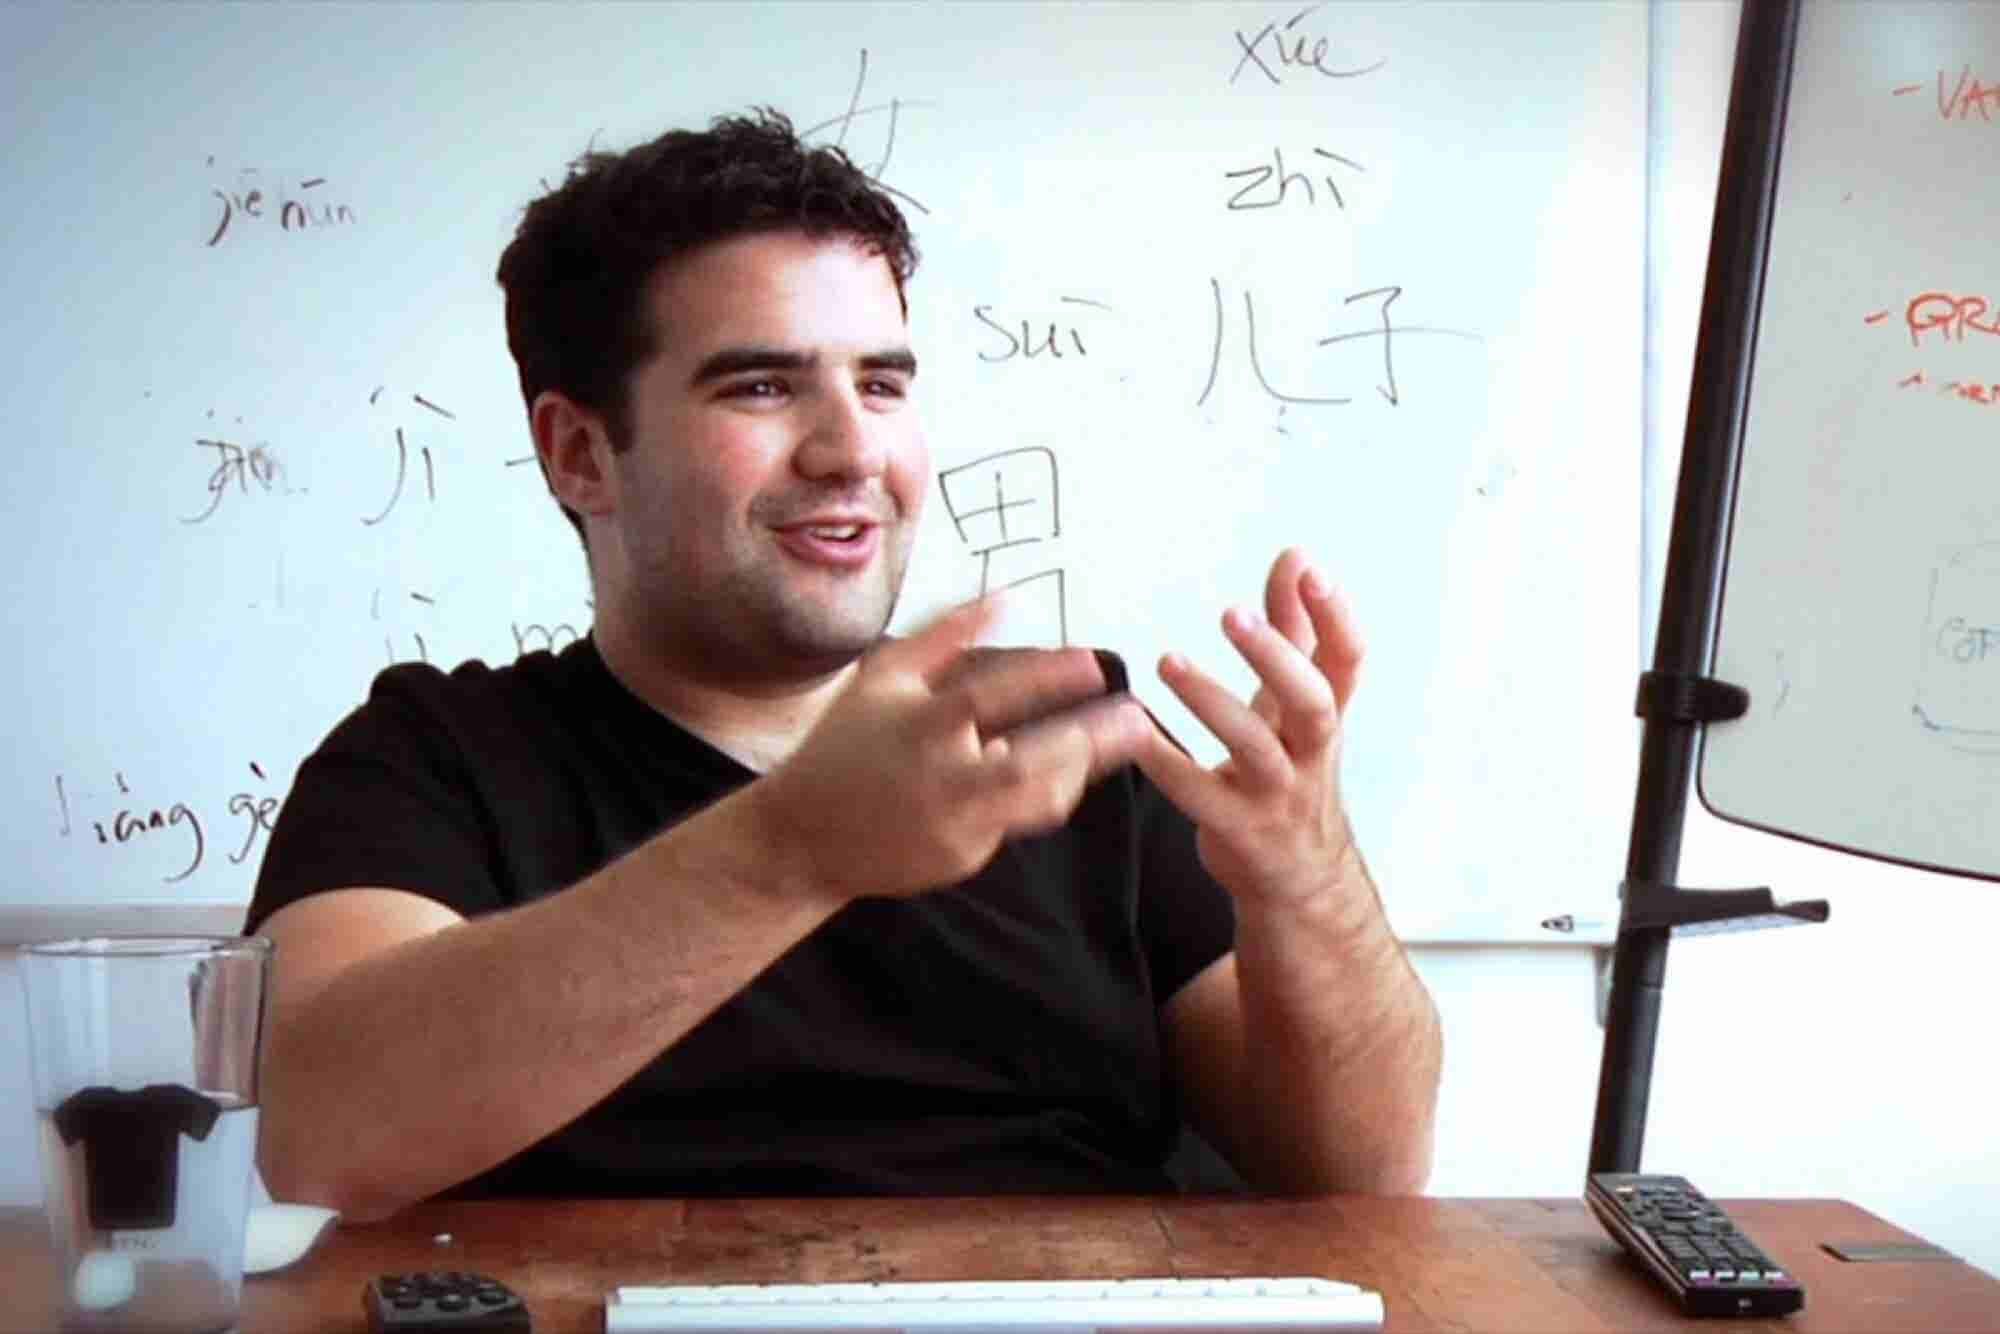 How a 'Quirky' 28-Year-Old Plowed Through $150 Million and Almost Destroyed His Startup